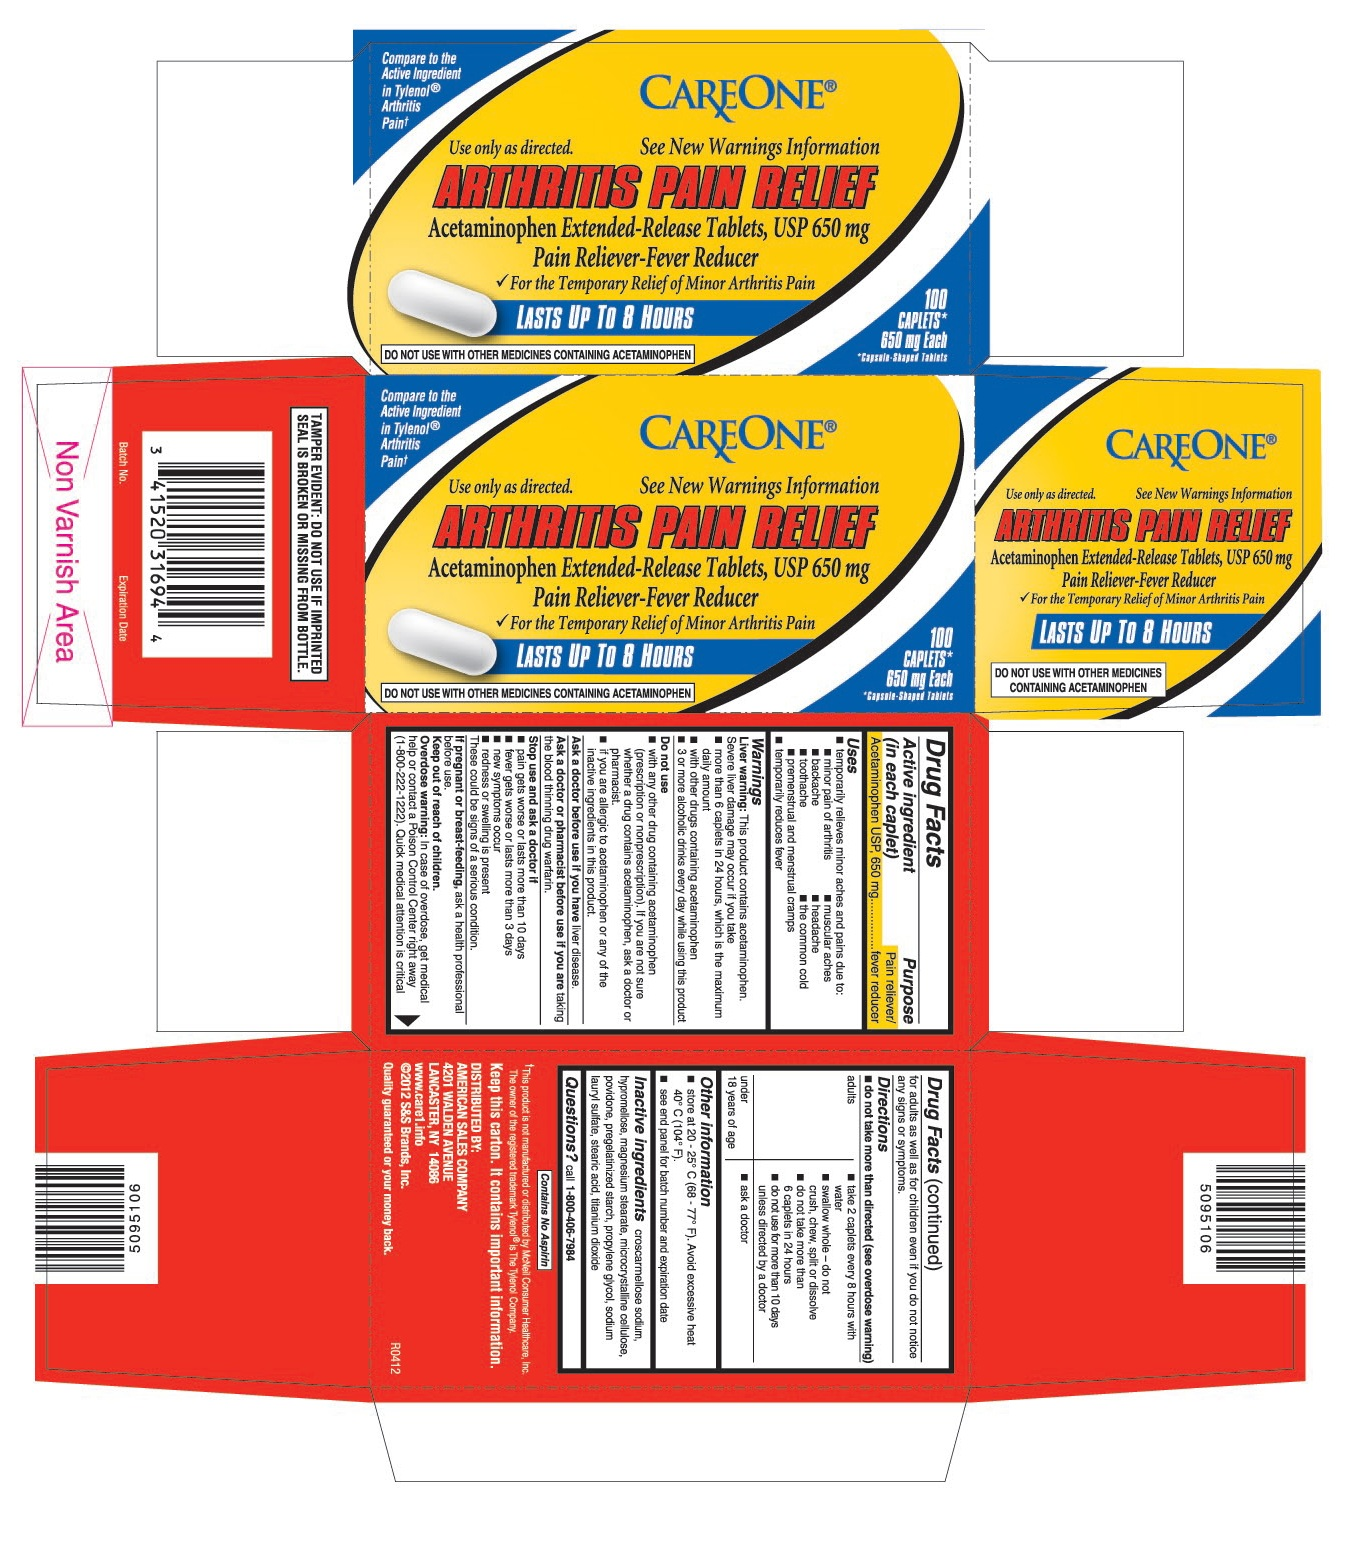 This is the 100 count bottle carton label for Careone Acetaminophen extended-release tablets, USP 650 mg.